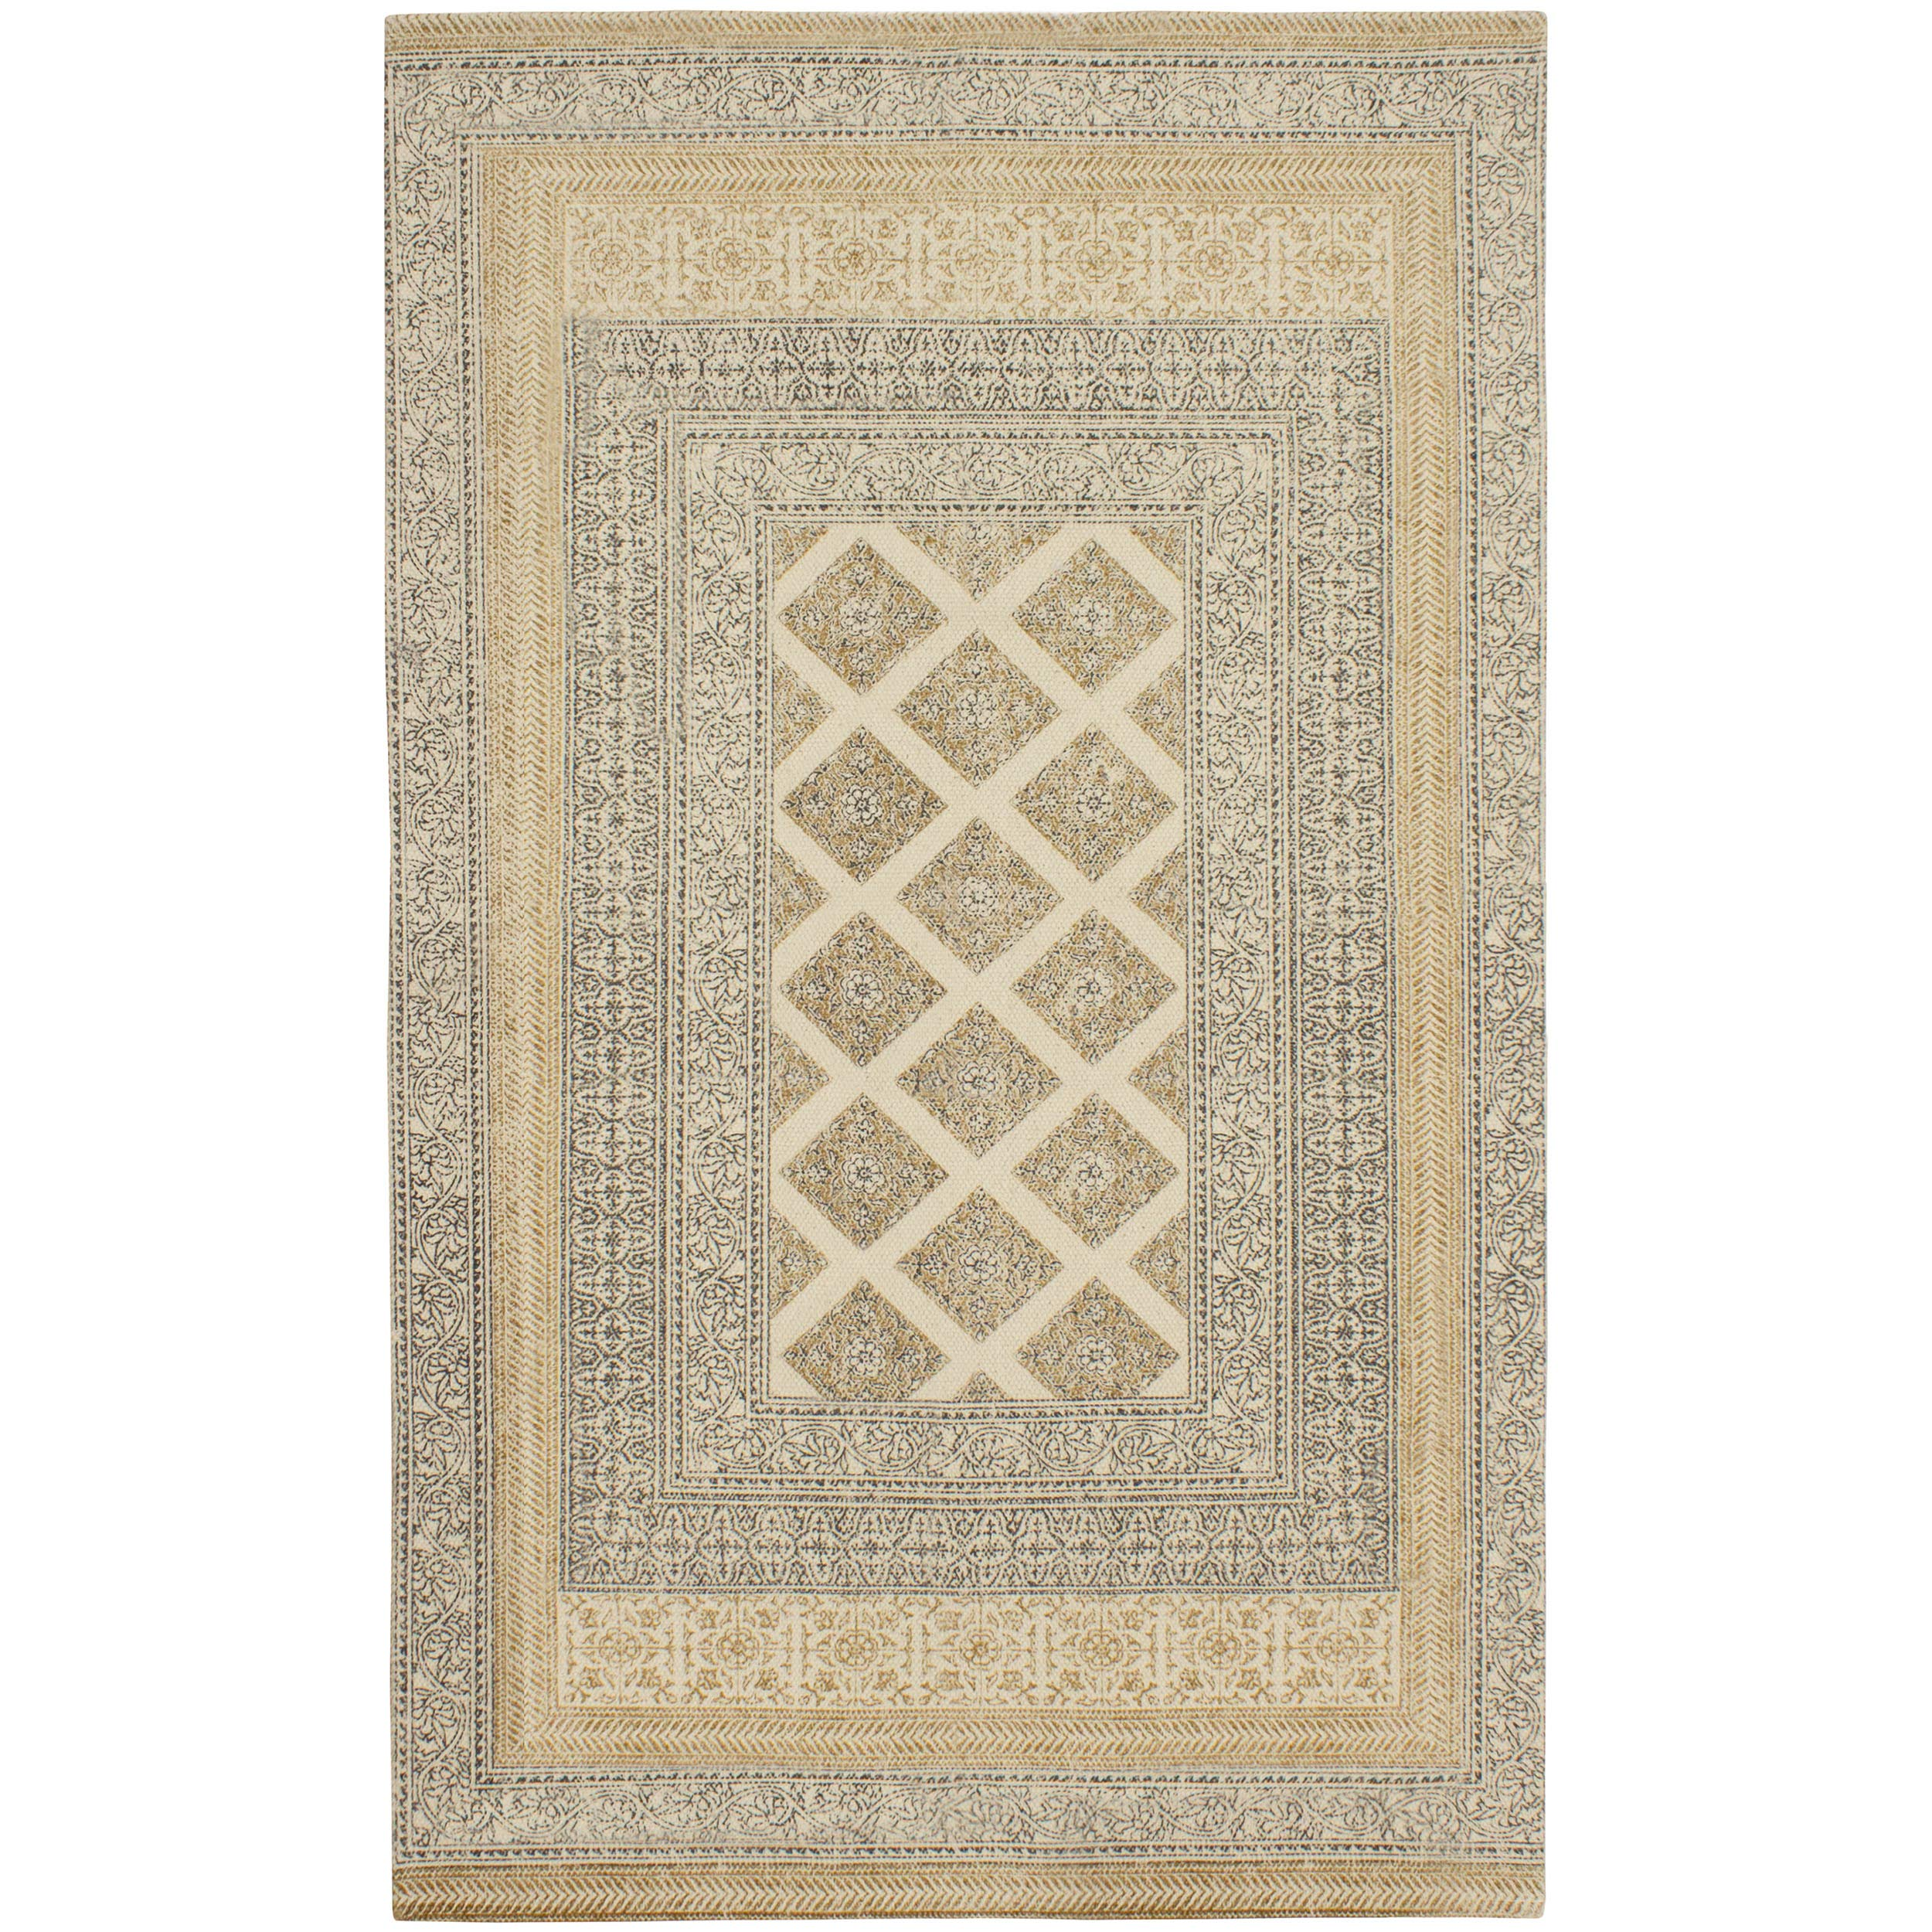 French Connection Bryn Stonewash Printed Cotton Accent Rug 48 in. x 72 in. in, Natural by French Connection (Image #1)